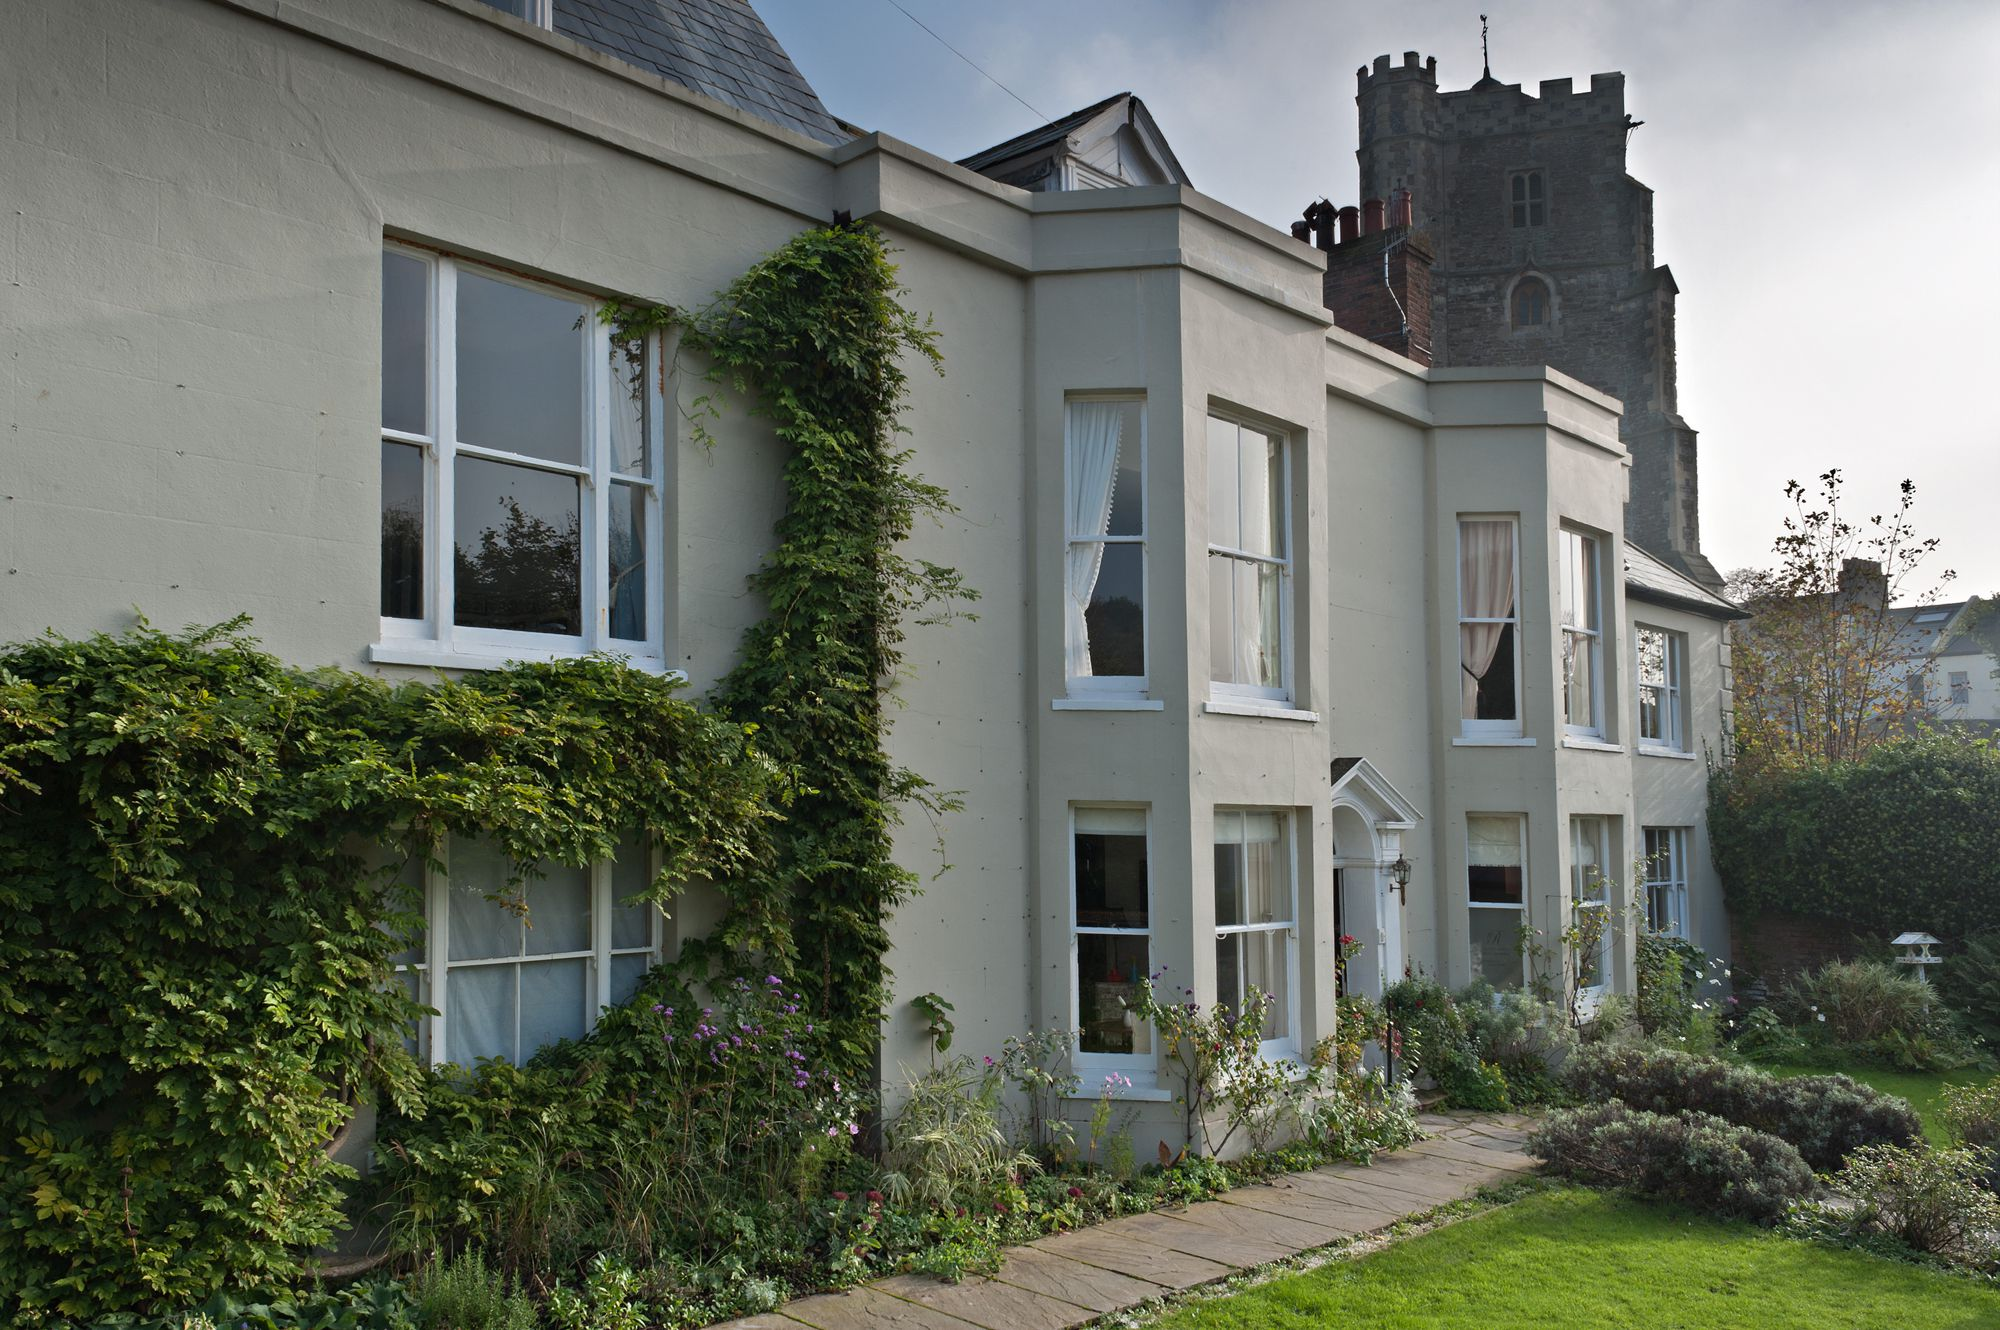 Hotels in Hastings holidays at Cool Places